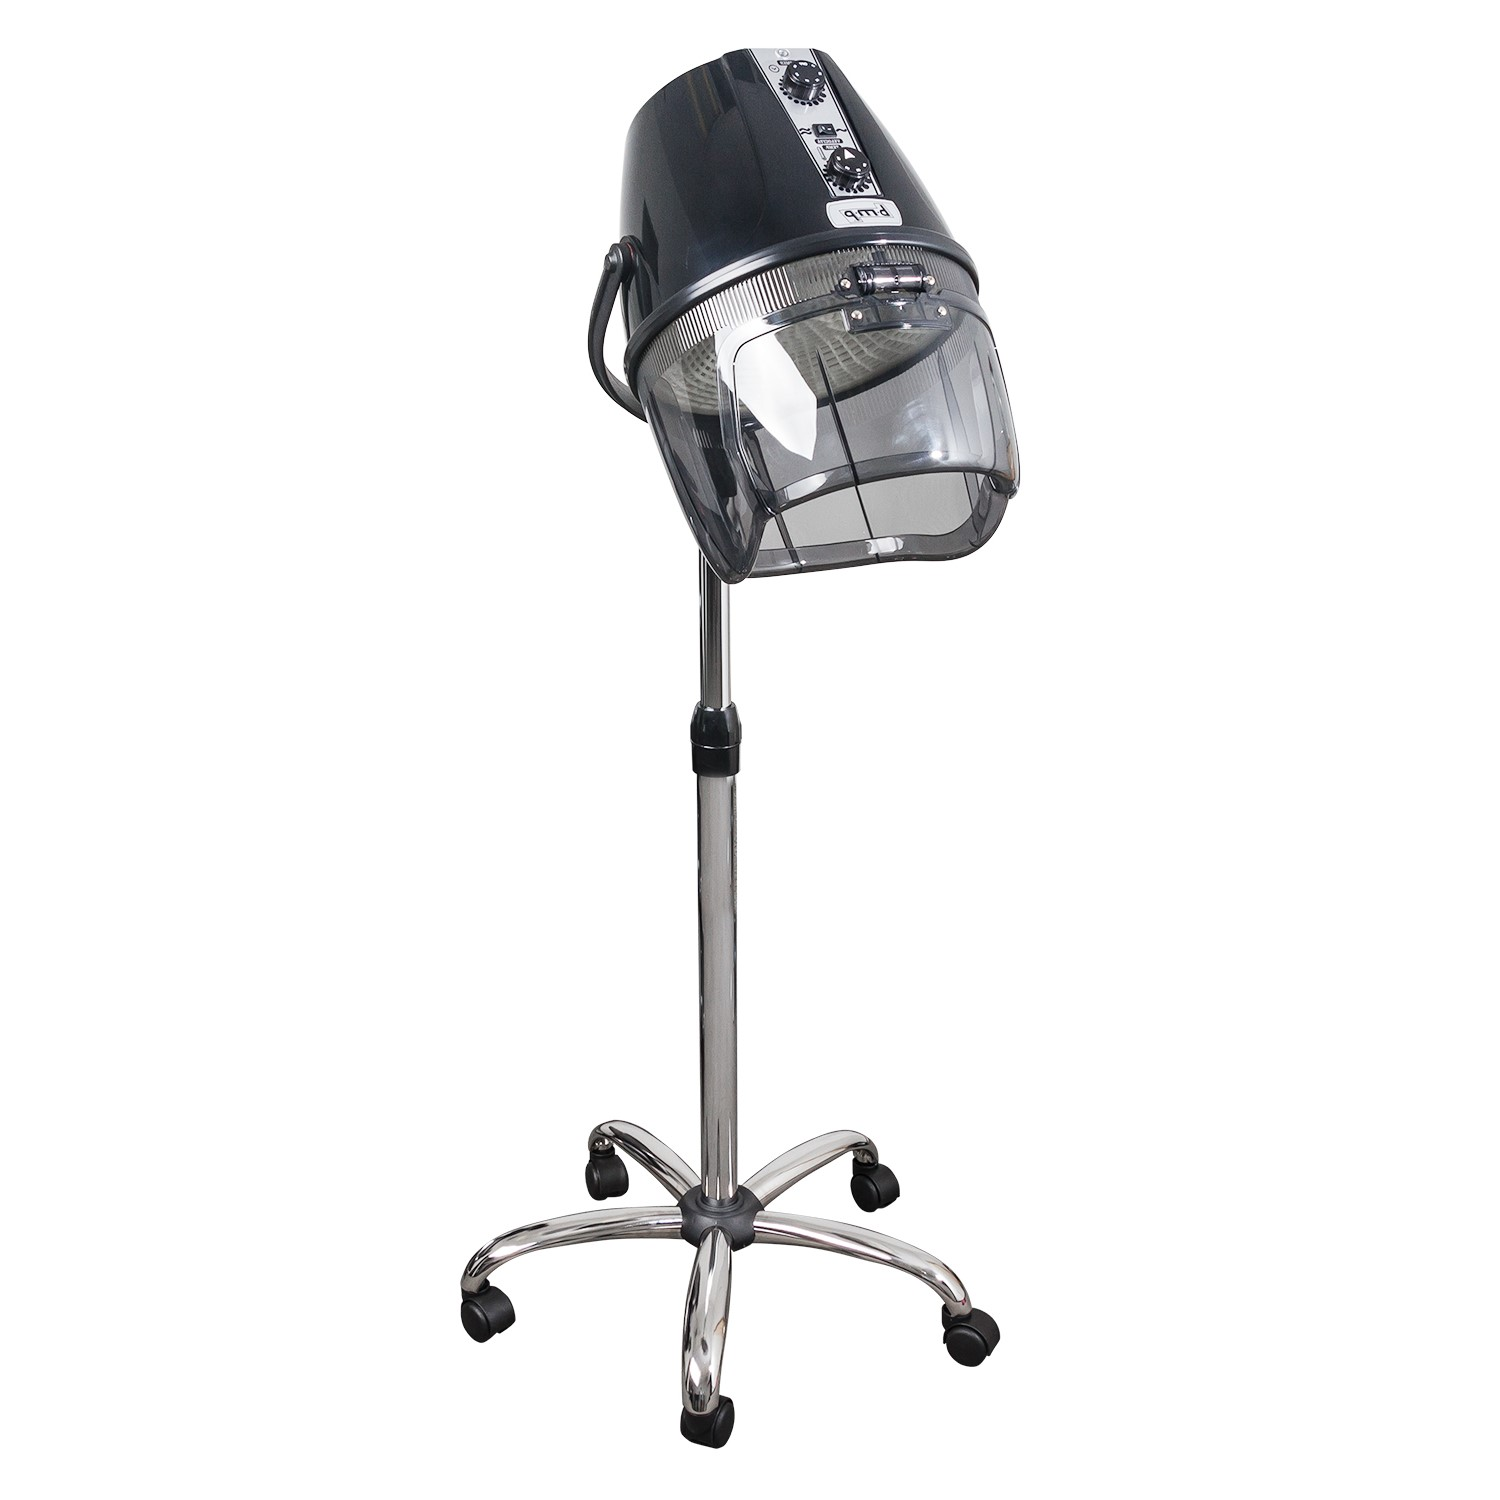 Black Italian Rondo Dryer on Chrome Stand product image